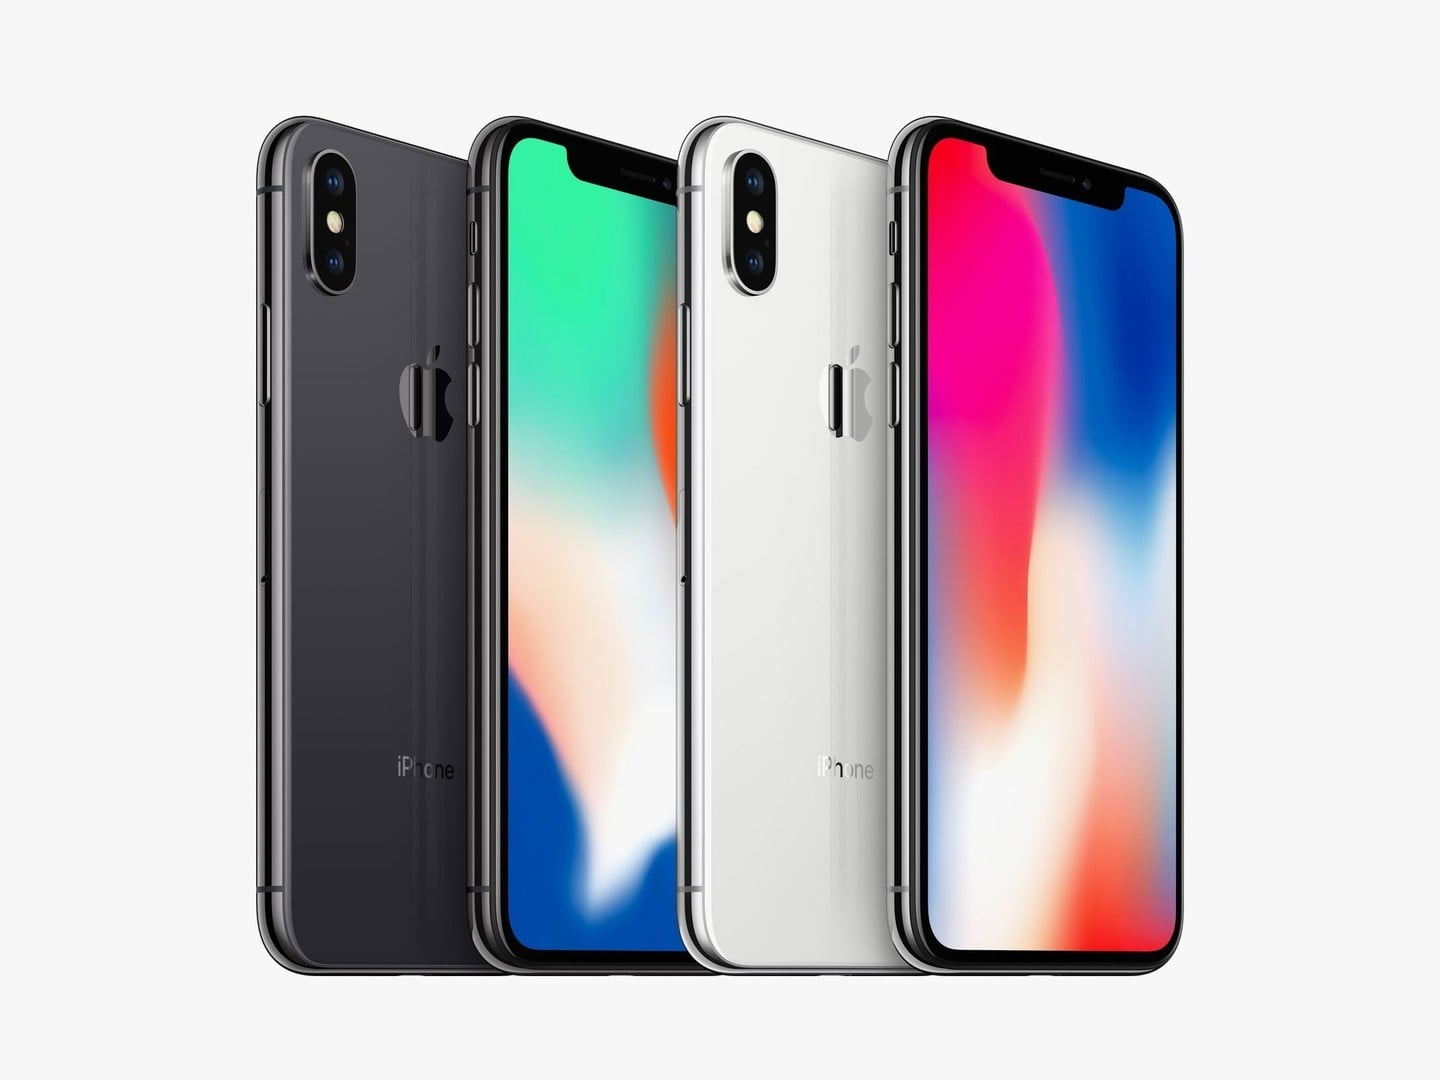 IPhone X deals? Don't hold your breath